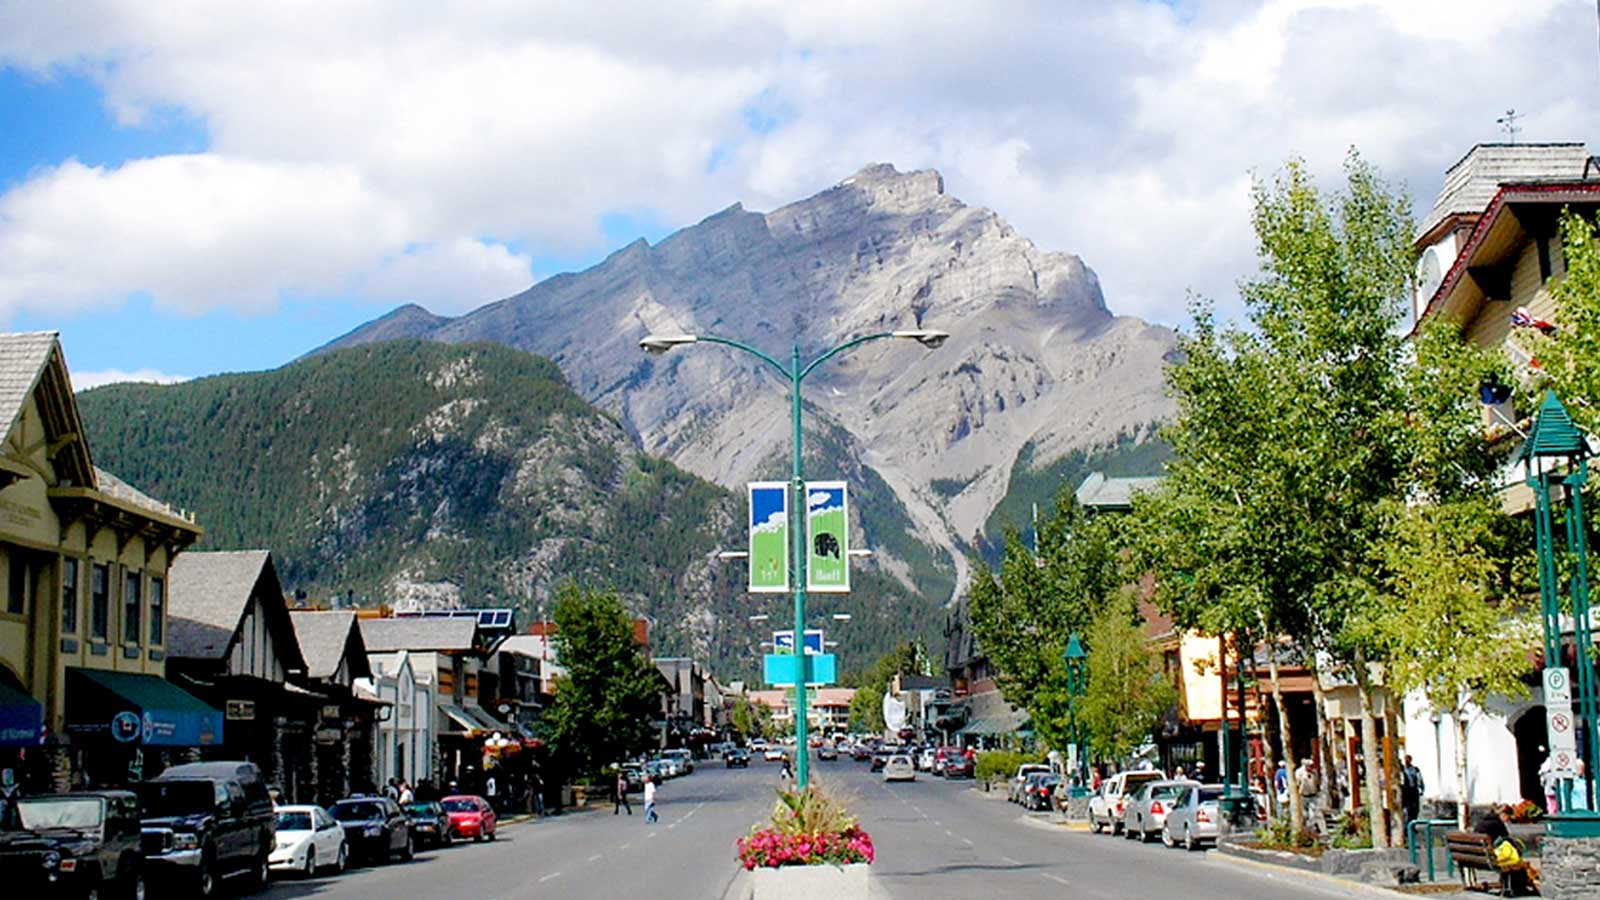 Banff Avenue with Cascade Mountain in the back